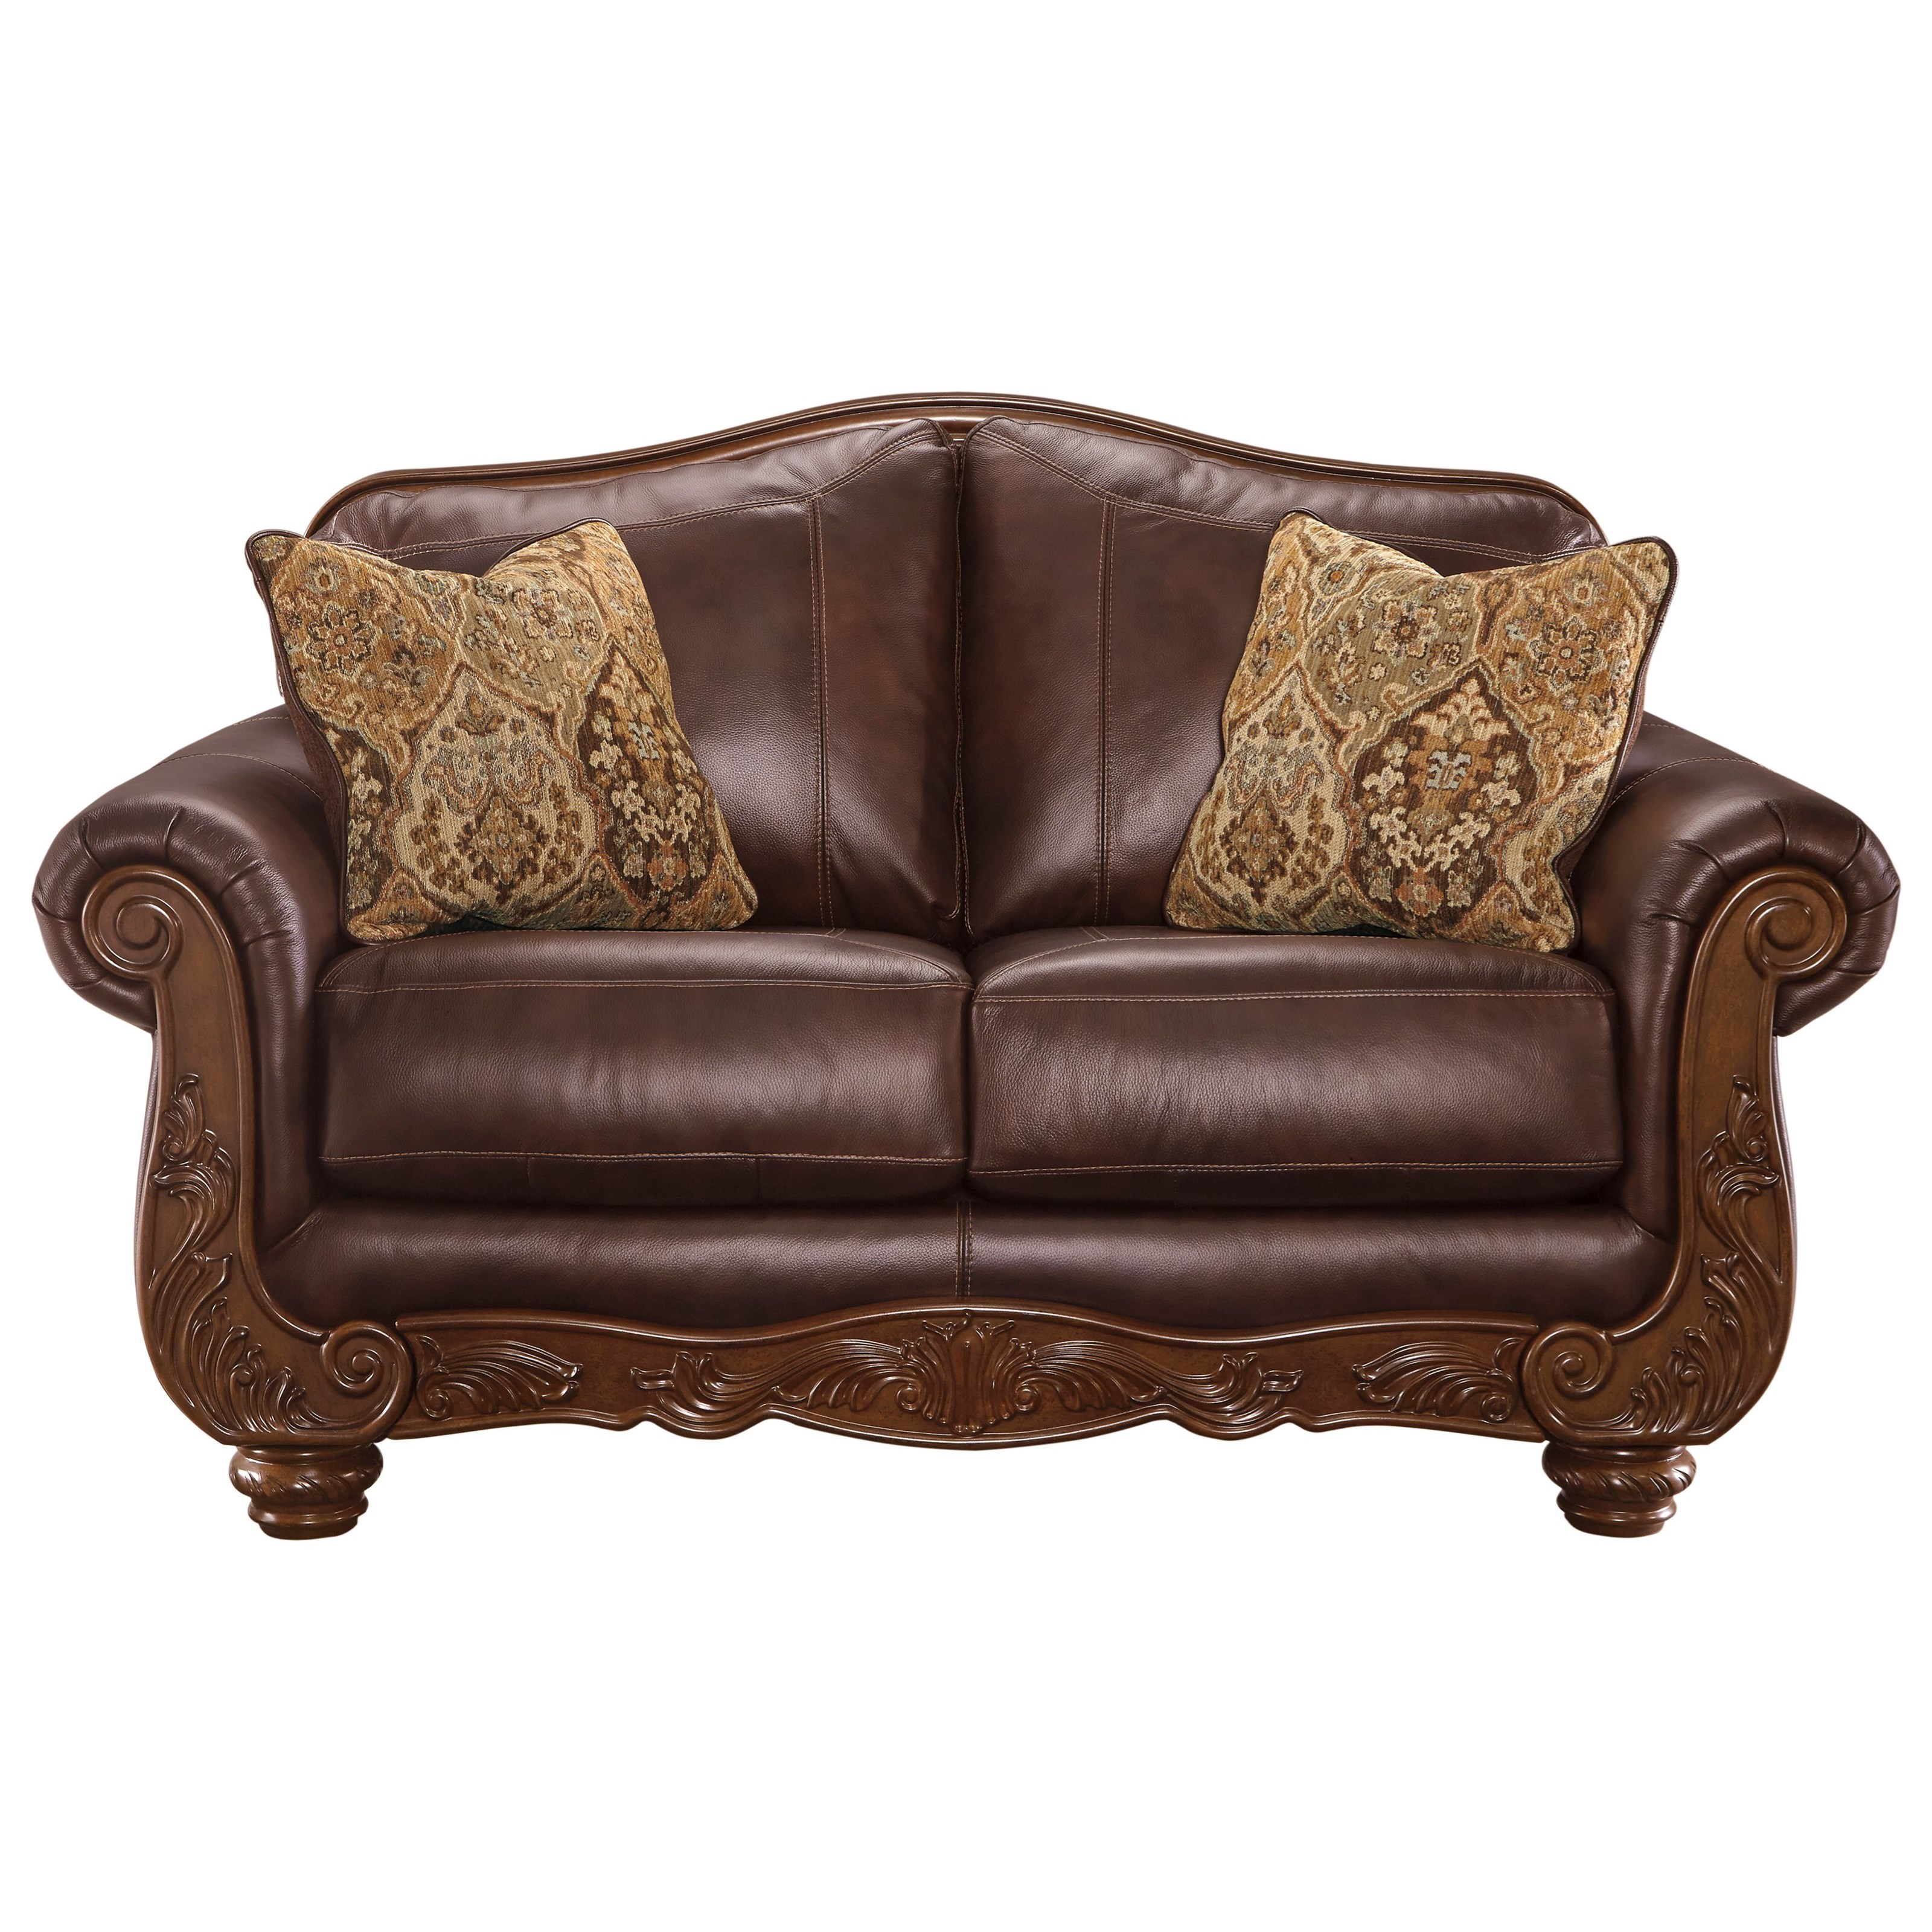 Signature Design by Ashley Mellwood Loveseat - Item Number: 6460535